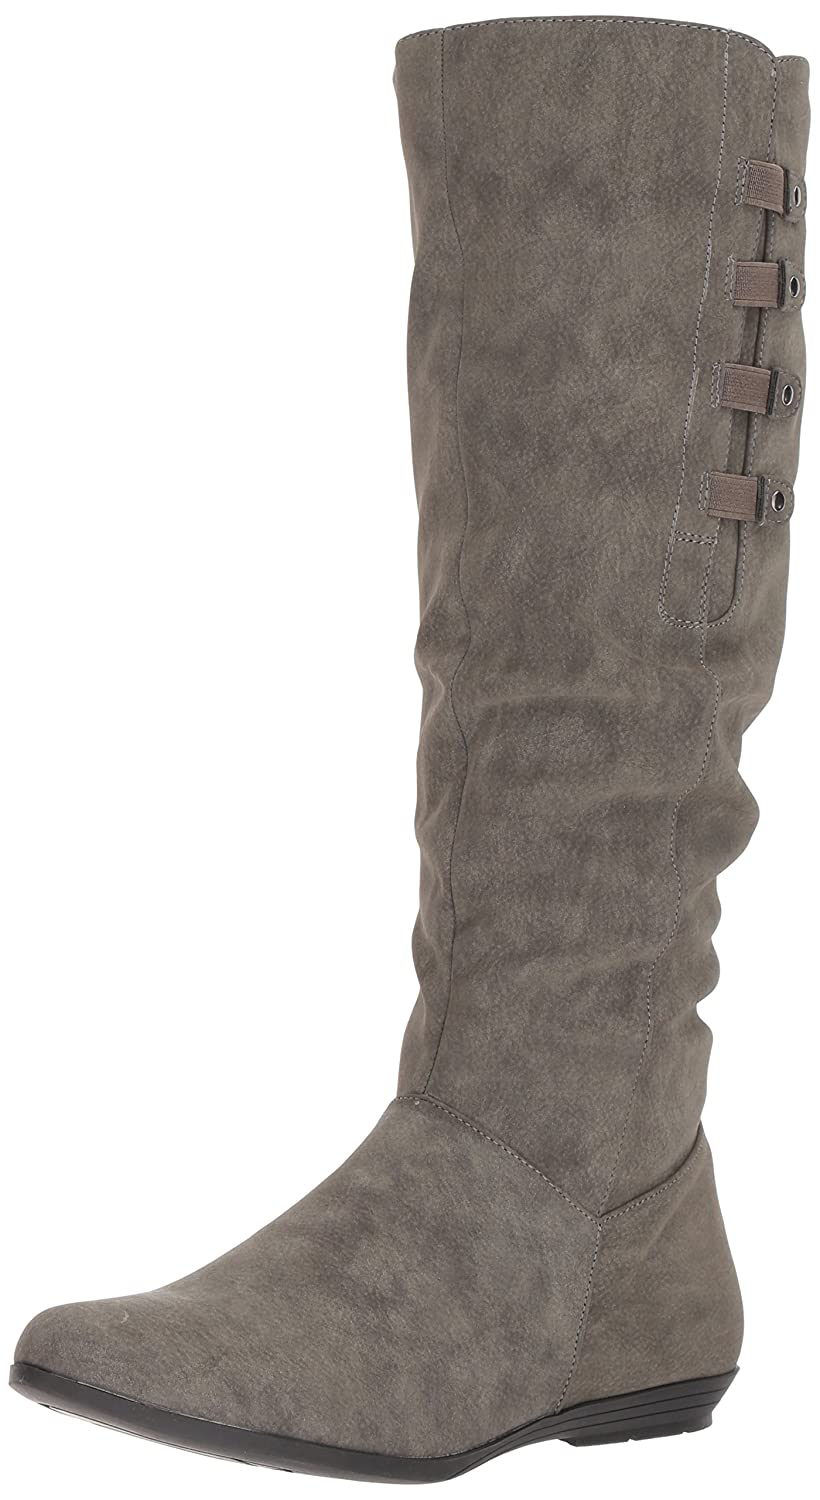 CLIFFS BY WHITE MOUNTAIN Women's Fordham Knee High Boot B074PJ479Z 11 B(M) US|Charcoal